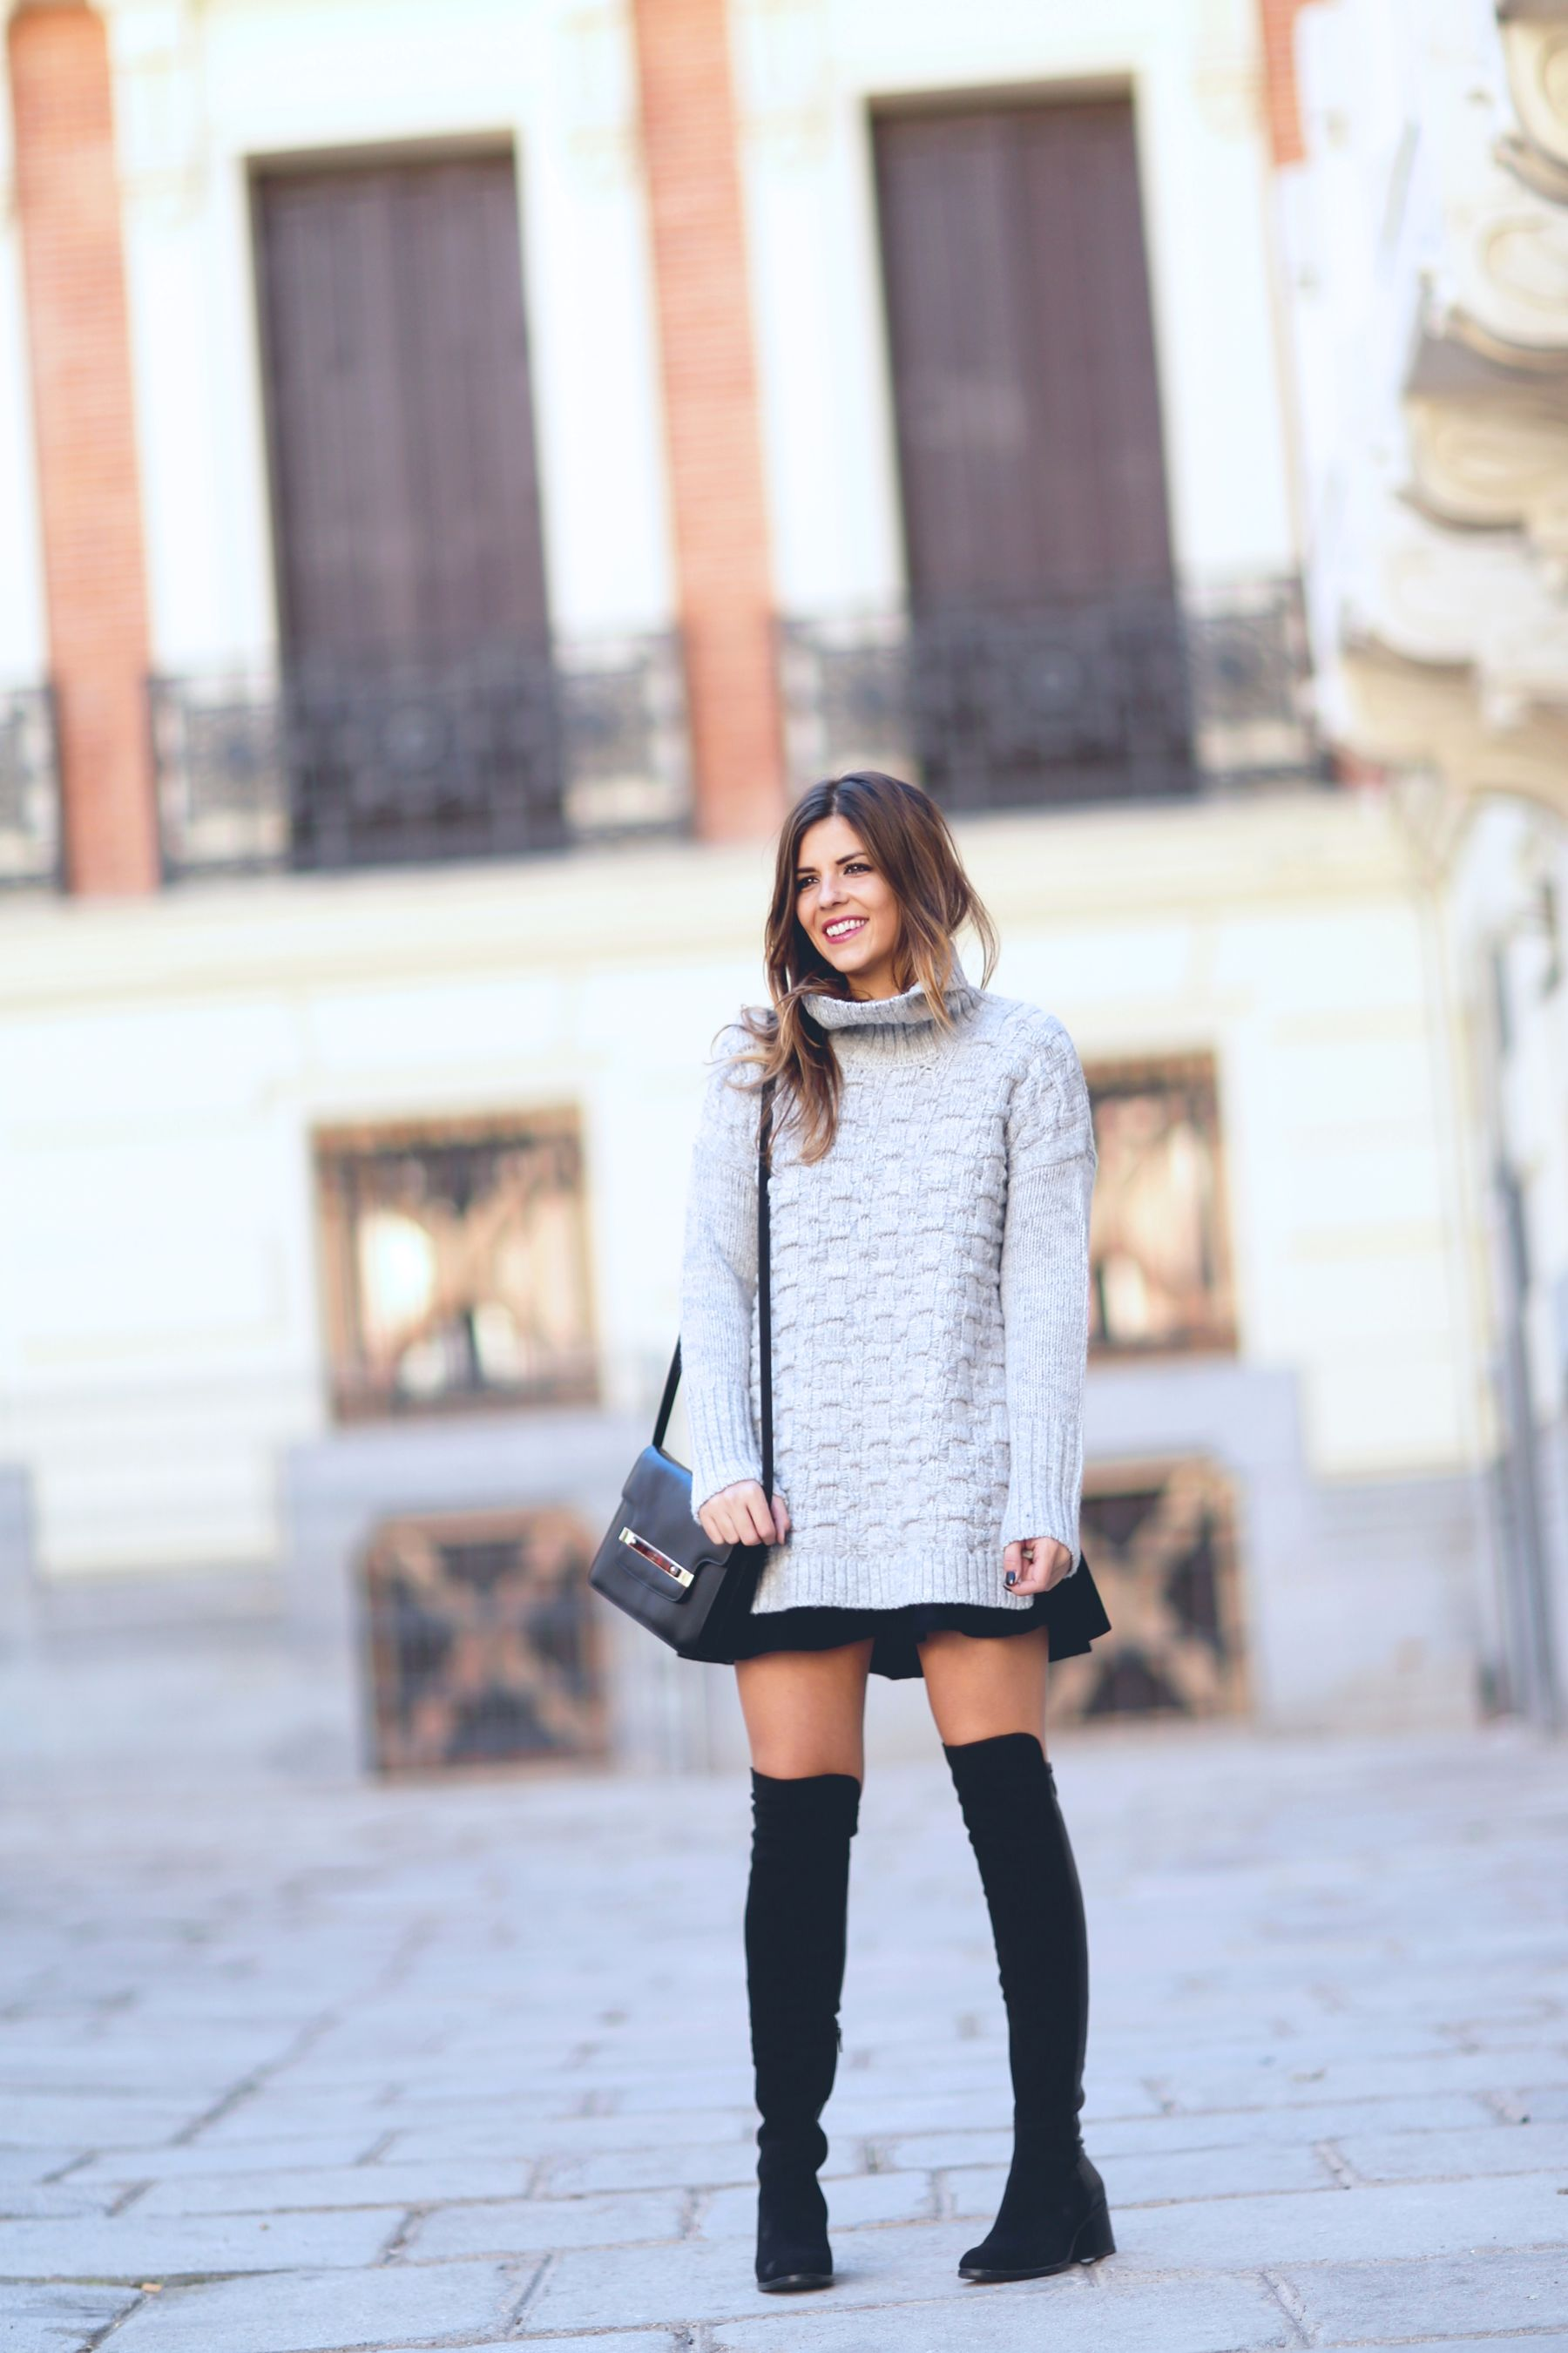 Αποτέλεσμα εικόνας για oversized turtleneck sweater with over-the-knee boots